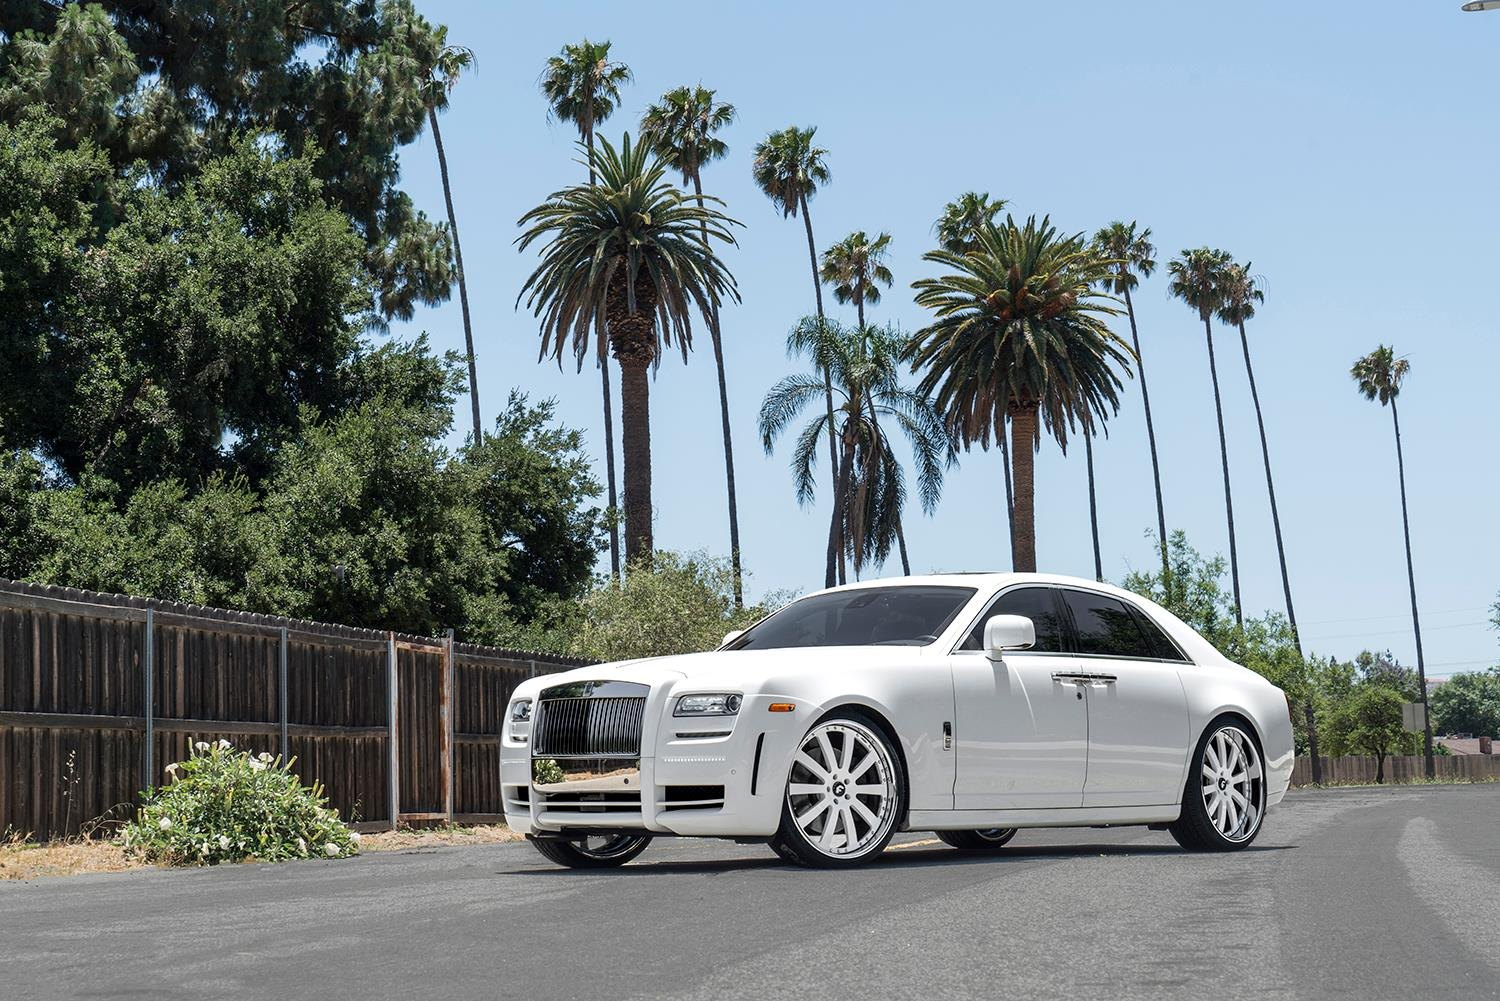 Custom White Rolls Royce Ghost Enhanced With Chrome Grille And Other Exterior Goodies Carid Com Gallery